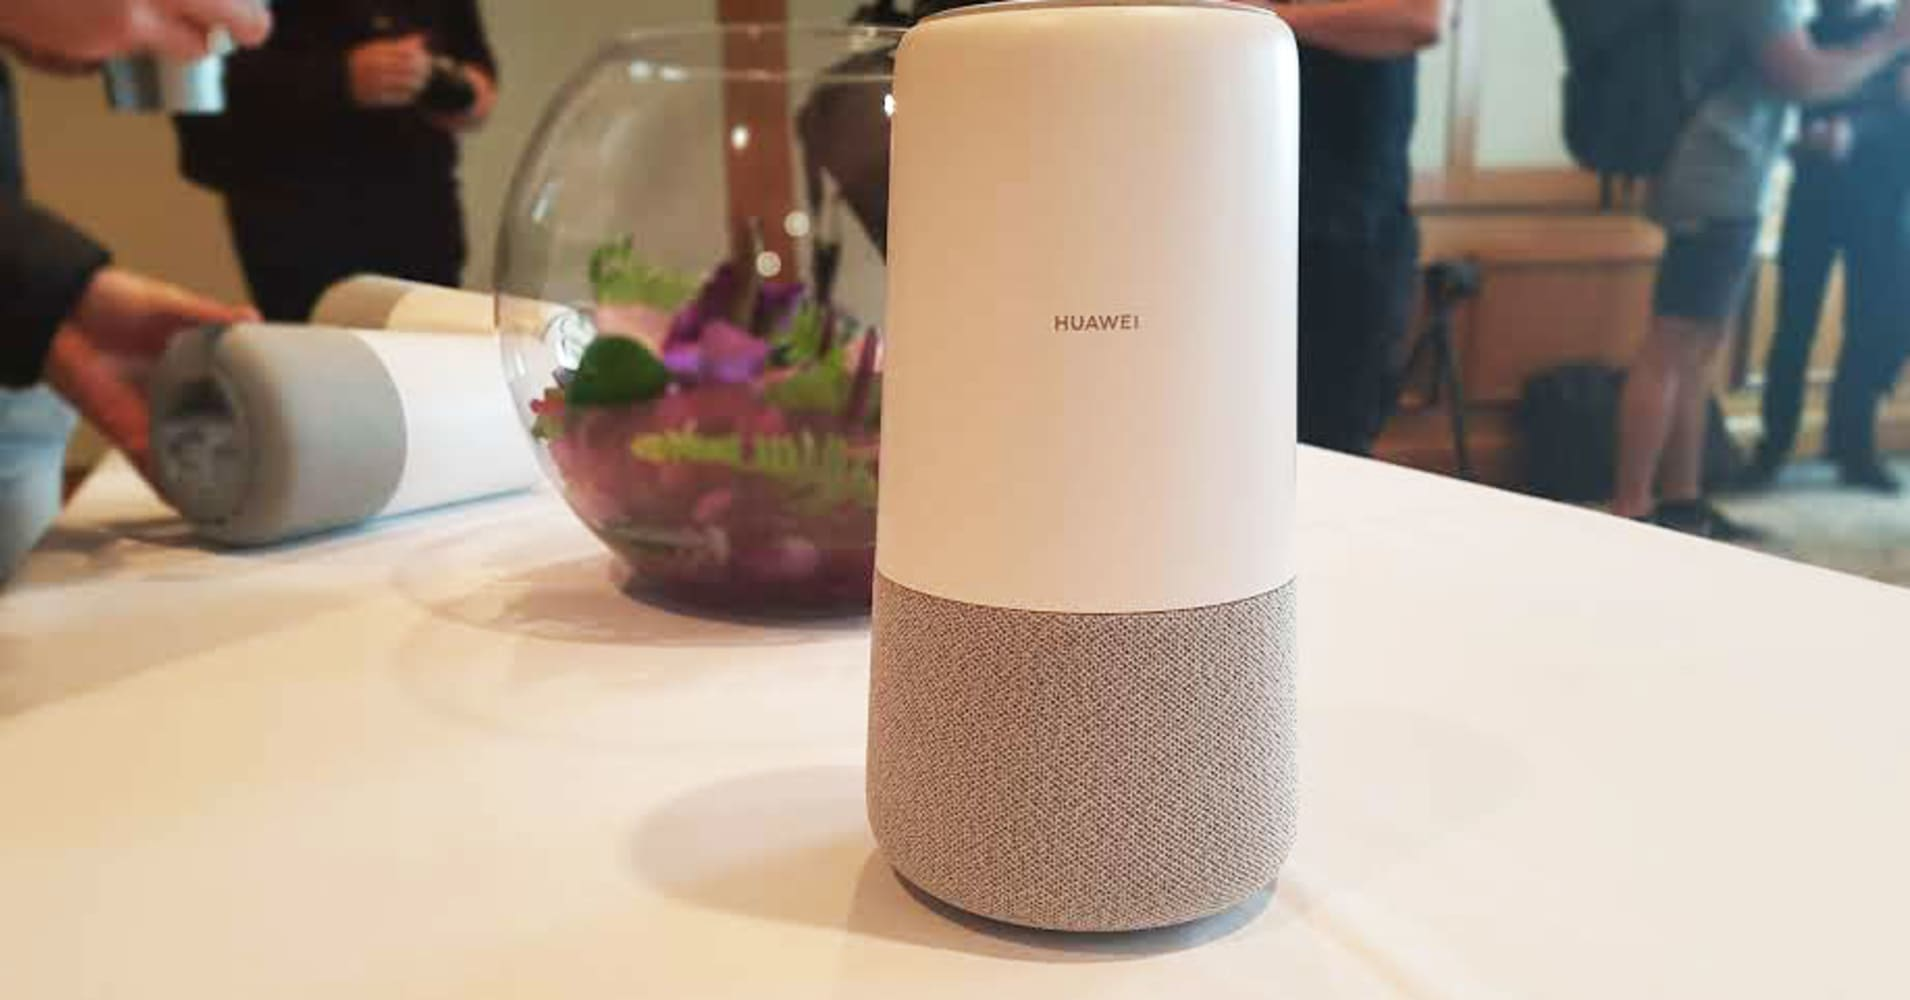 Huawei voice assistant to rival Amazon Alexa and Google outside China